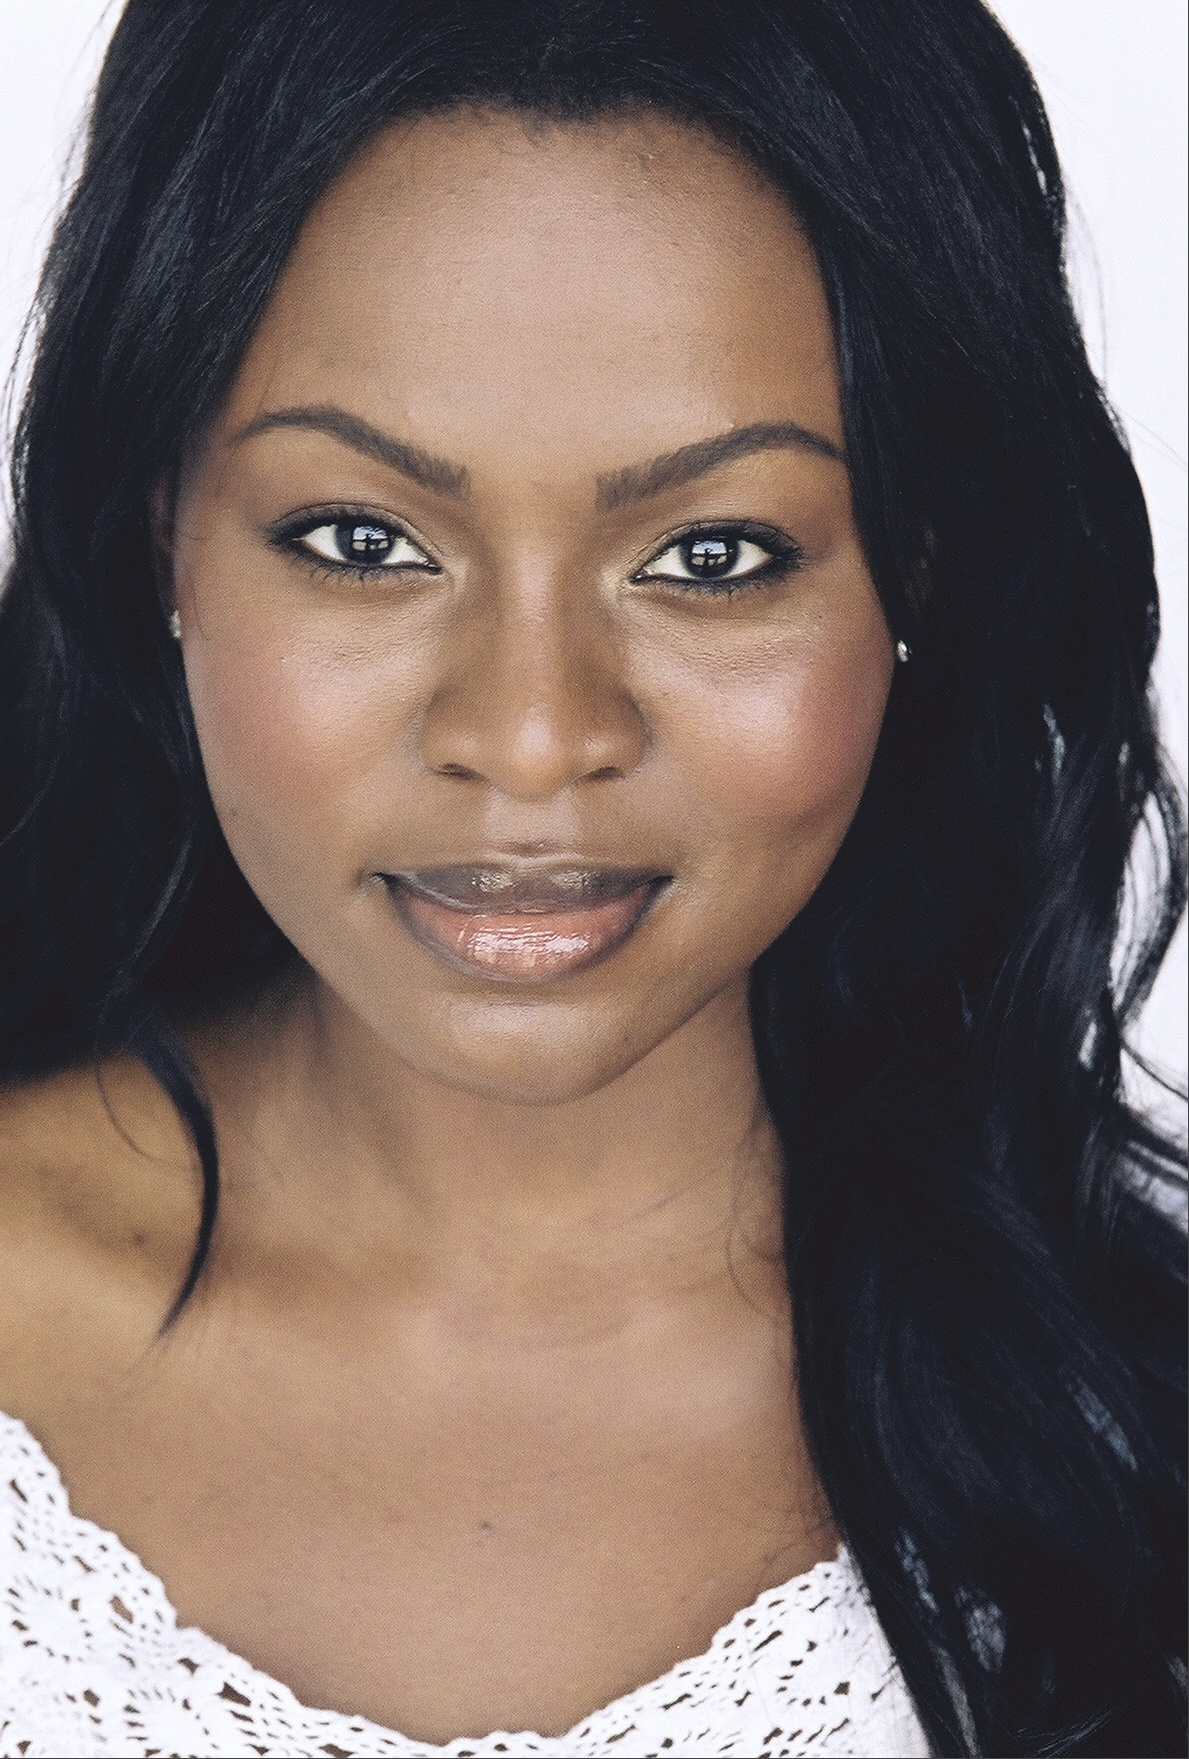 Yetide Badaki nude (64 photos), Sexy, Sideboobs, Twitter, cleavage 2006